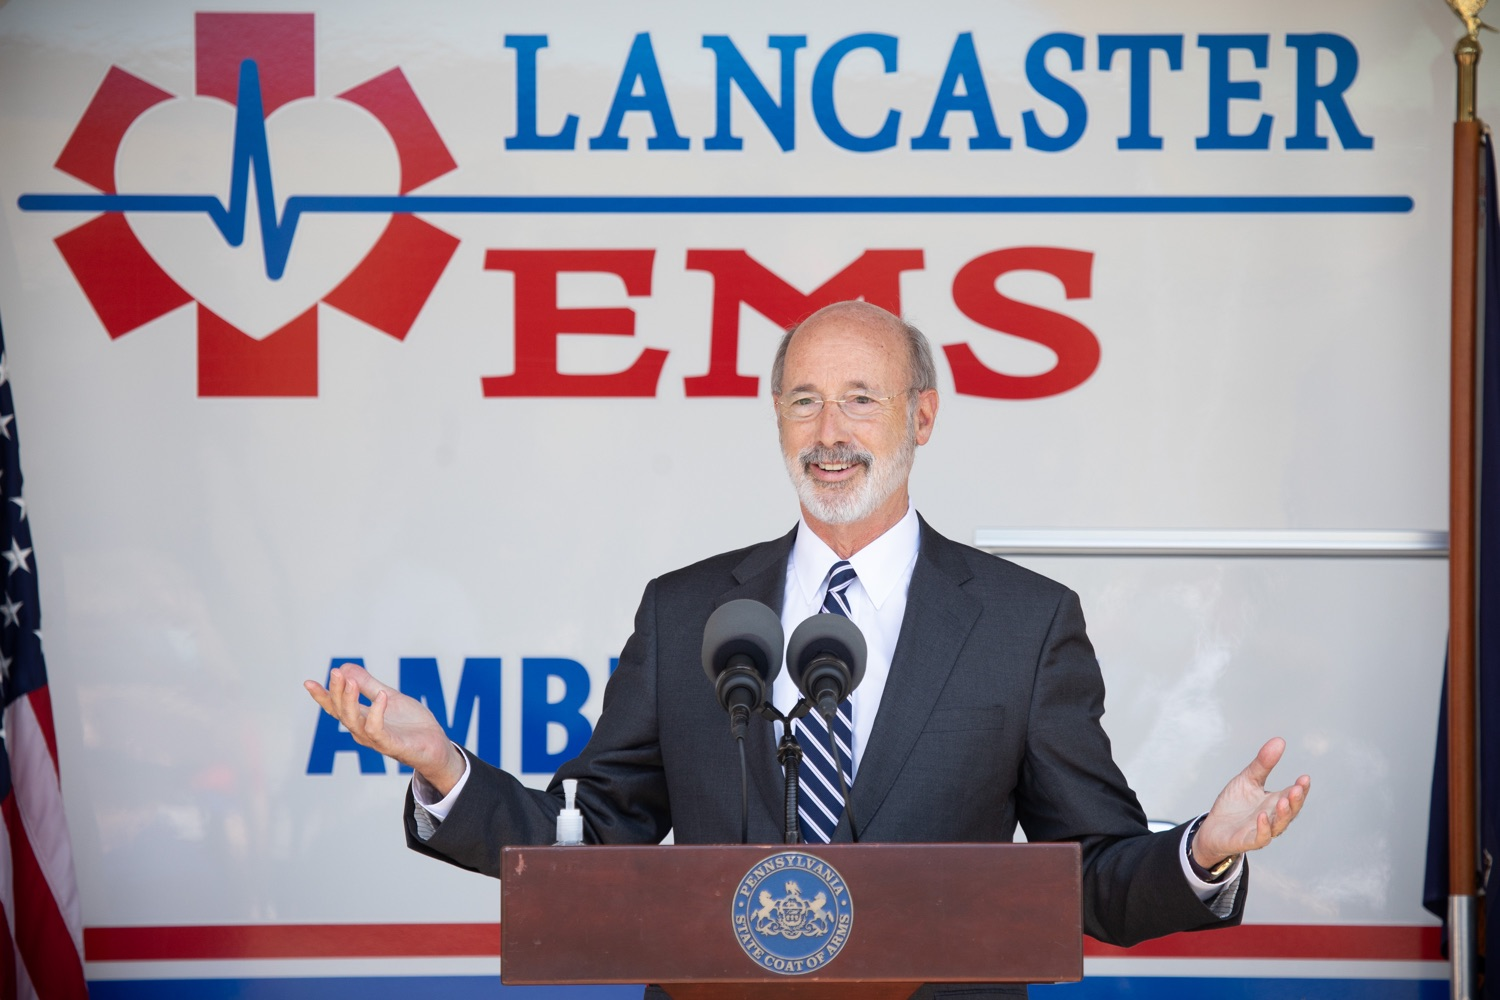 "<a href=""https://filesource.wostreaming.net/commonwealthofpa/photo/18180_gov_first_responders_dz_015.jpg"" target=""_blank"">⇣ Download Photo<br></a>Pennsylvania Governor Tom Wolf speaking with Lancaster EMS employees and their families. Governor Tom Wolf visited the Millersville location of Lancaster EMS today to thank first responders and learn about how they are adapting their critical work during the states response to the COVID-19 pandemic.  Millersville, PA  July 30, 2020"